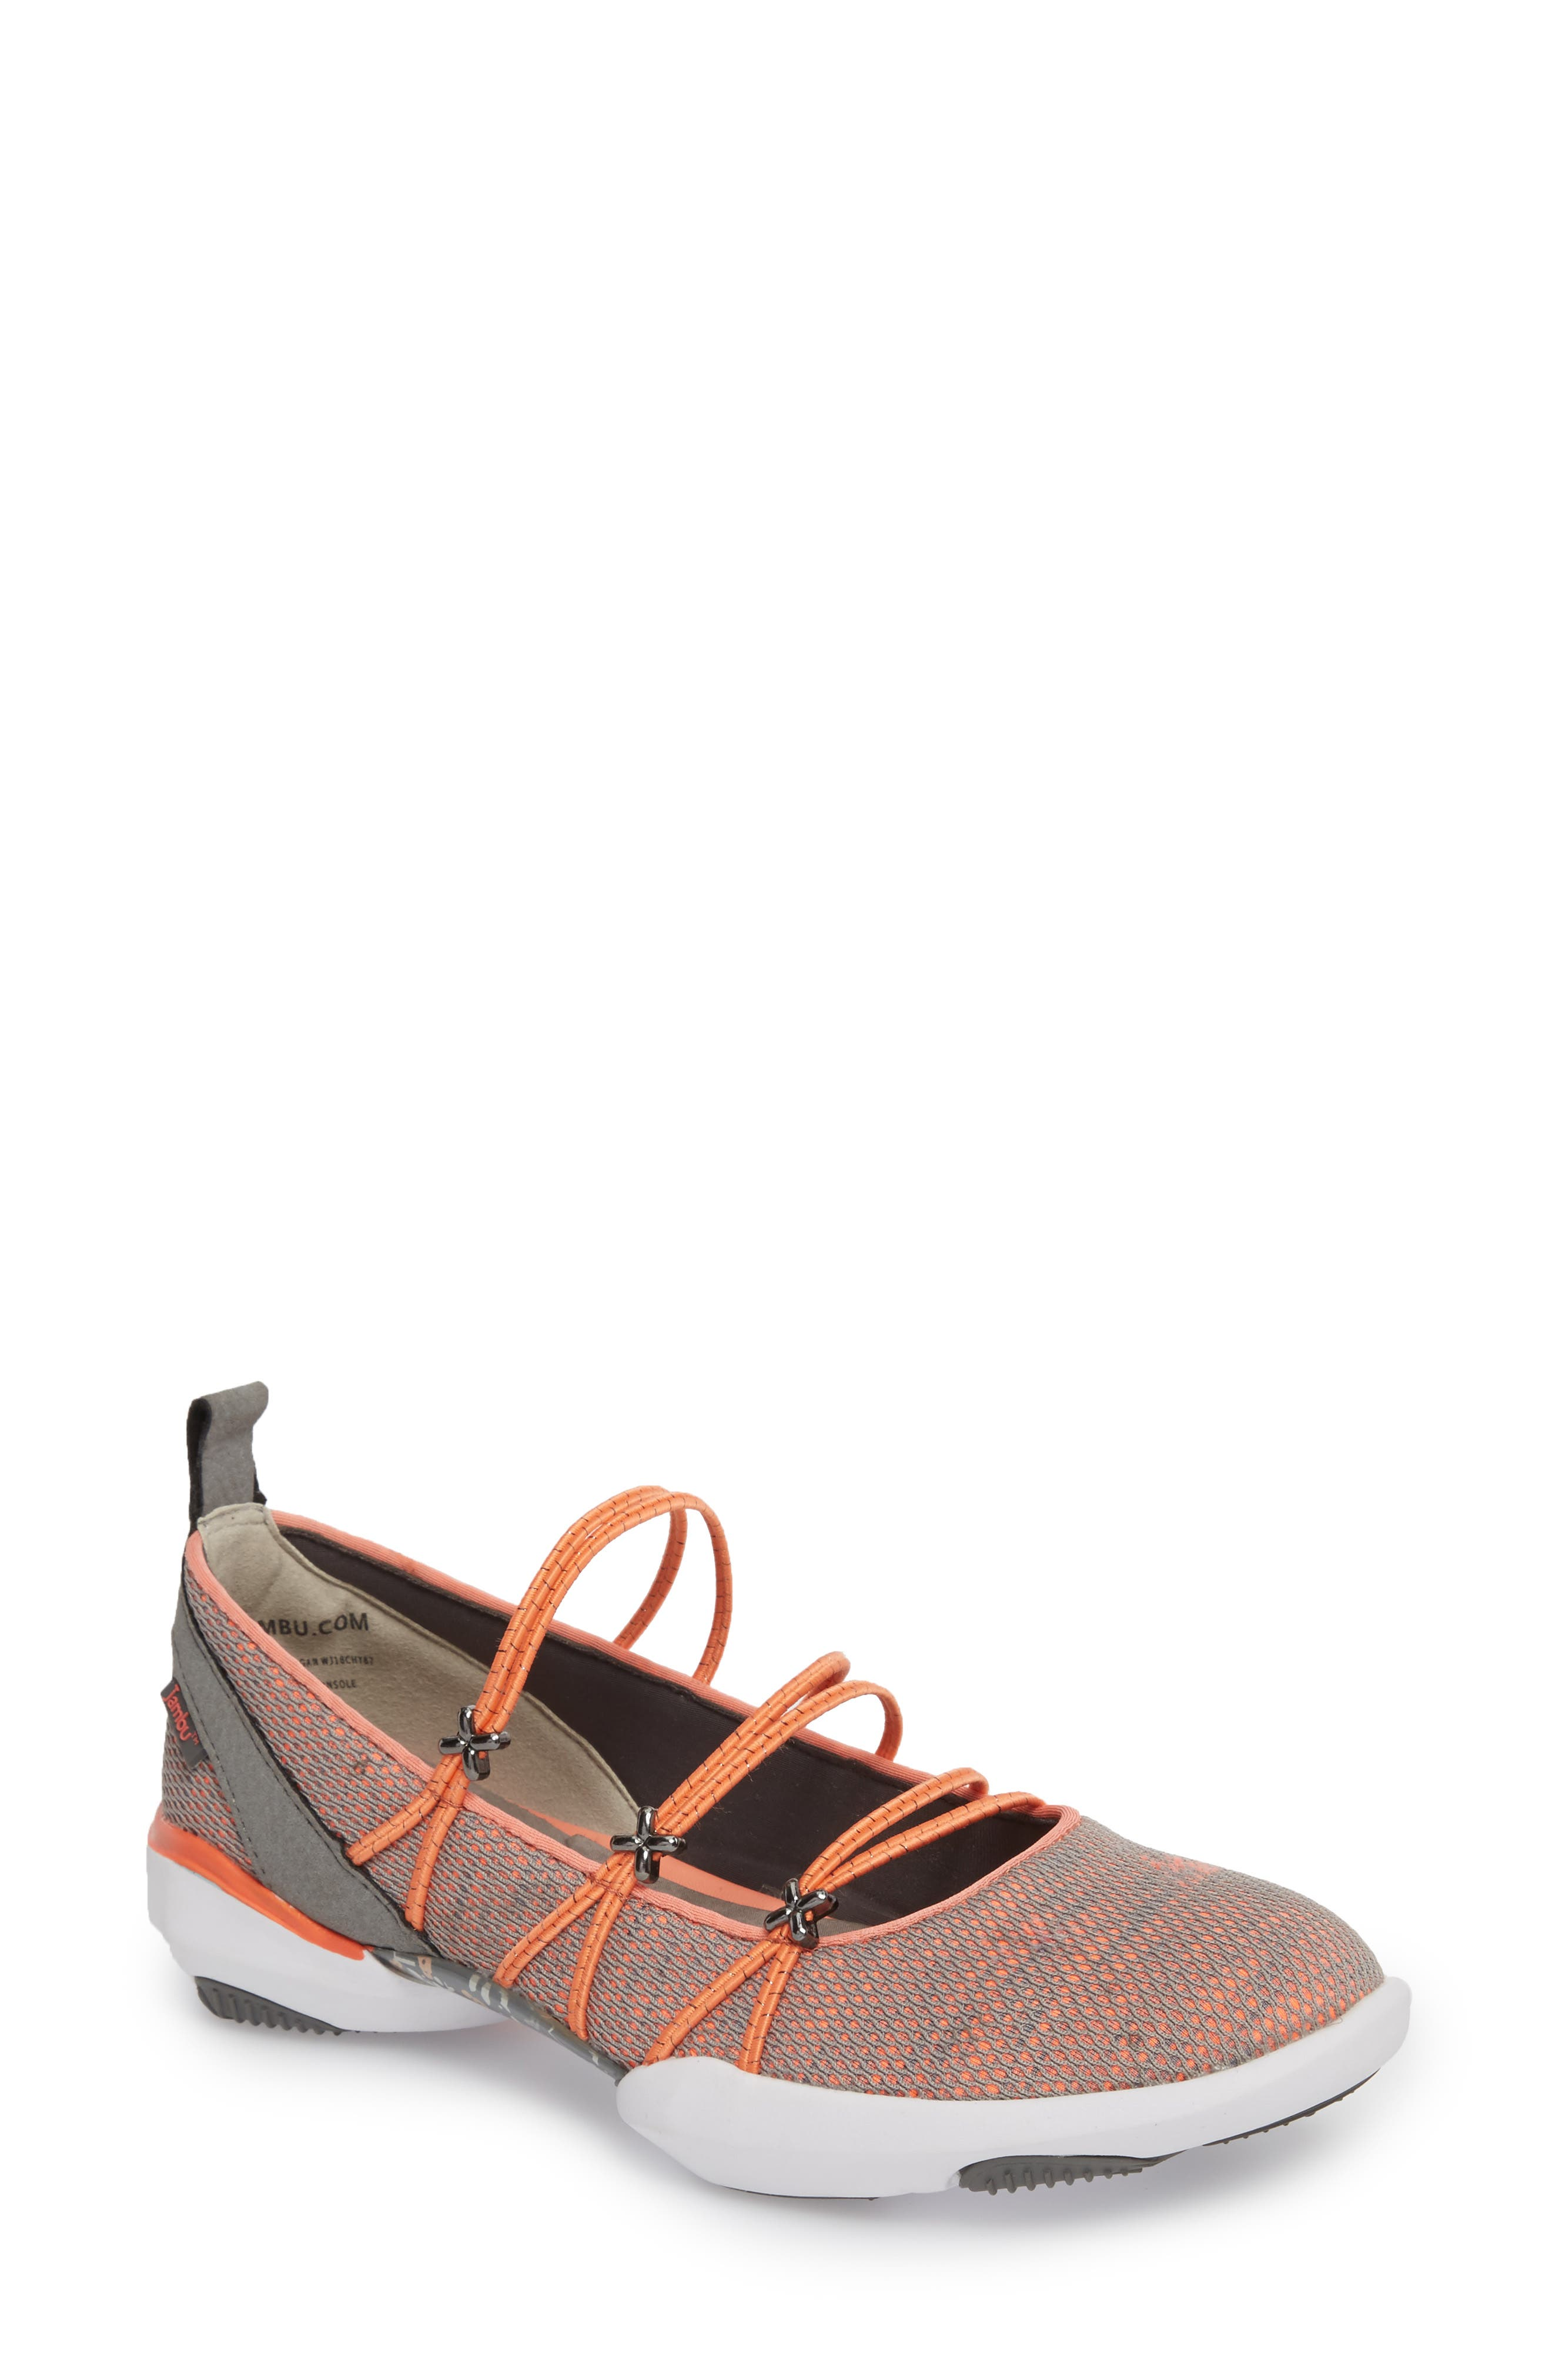 Cheyenne Water Ready Slip-on,                         Main,                         color, ORANGE